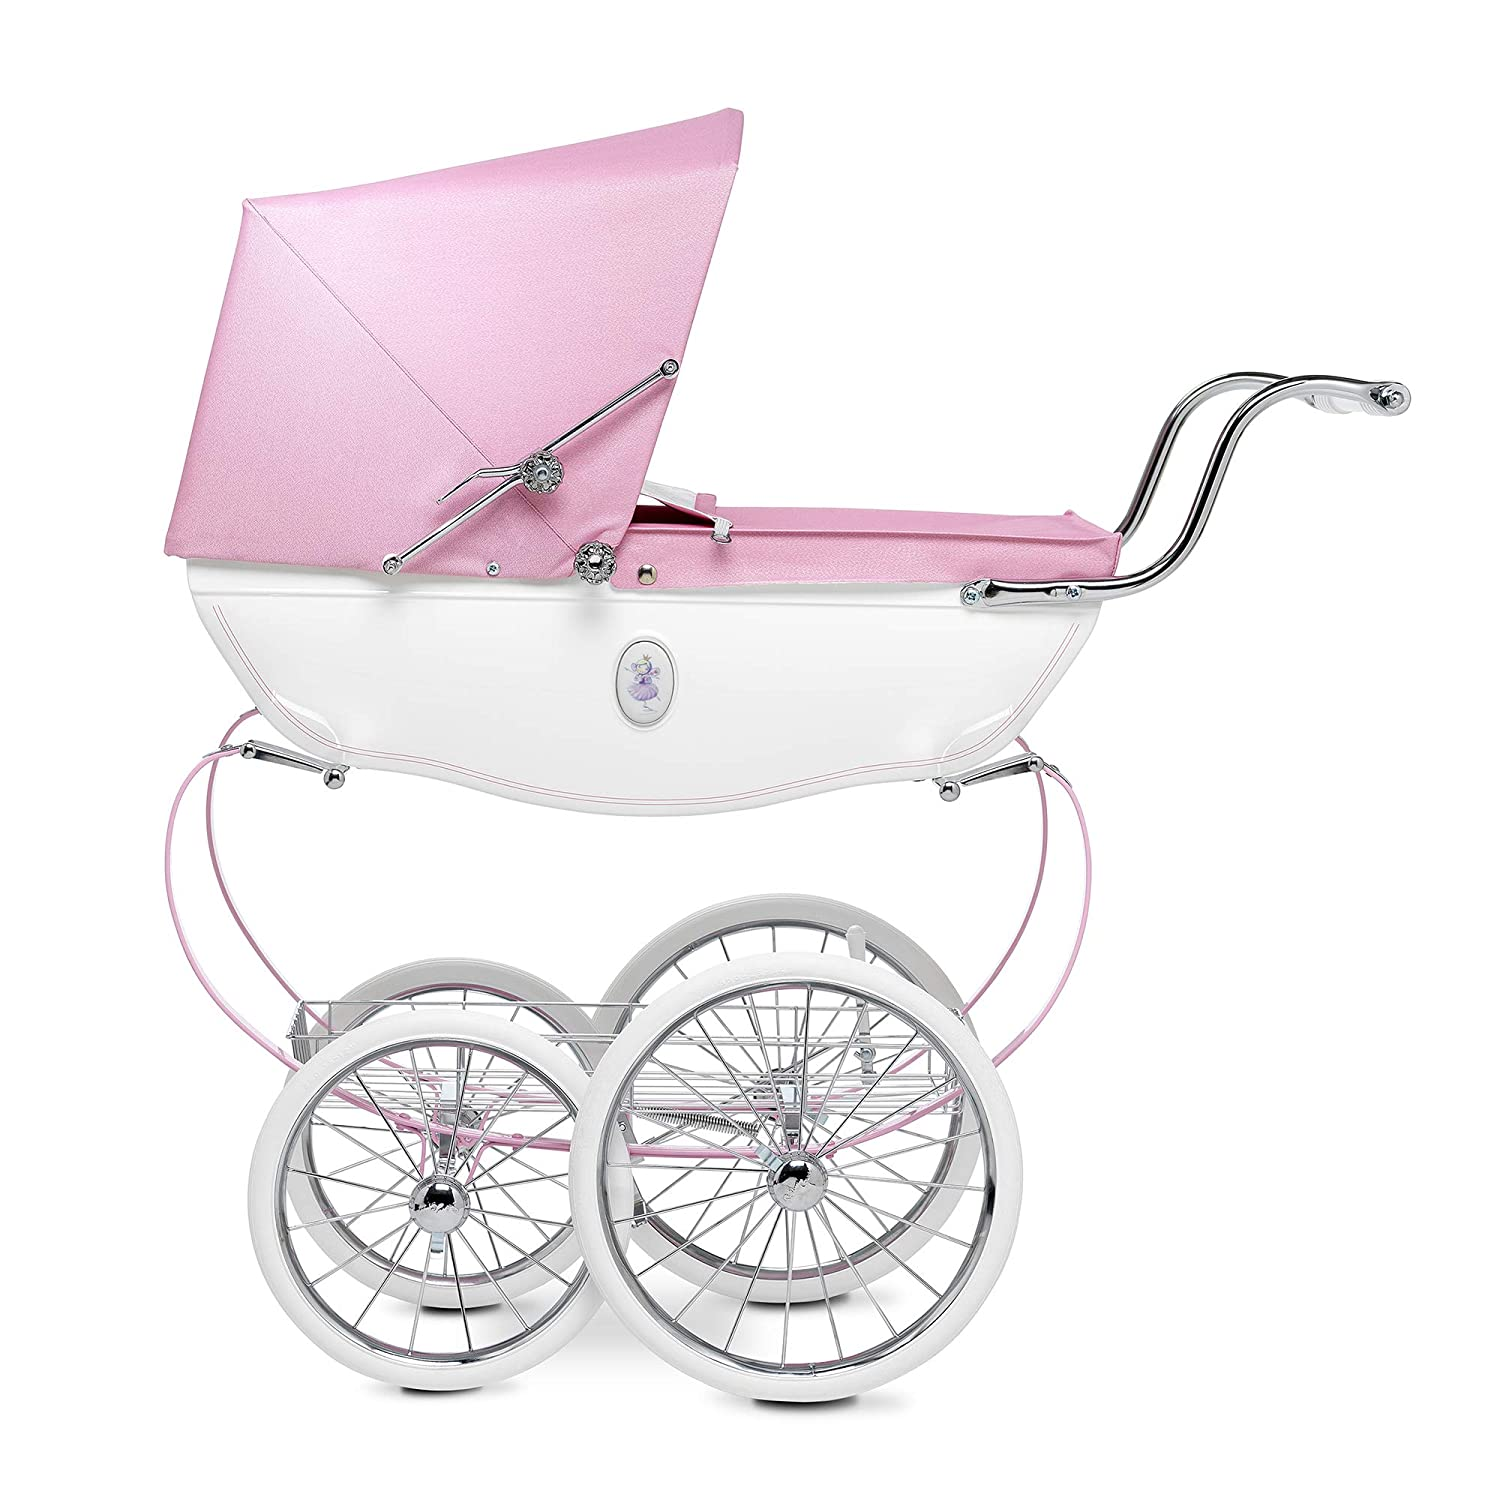 9d46757a643f8 Amazon.com  Silver Cross Doll s Pram - Baby Toy Stroller - Handmade in  England (Princess Pink)  Toys   Games